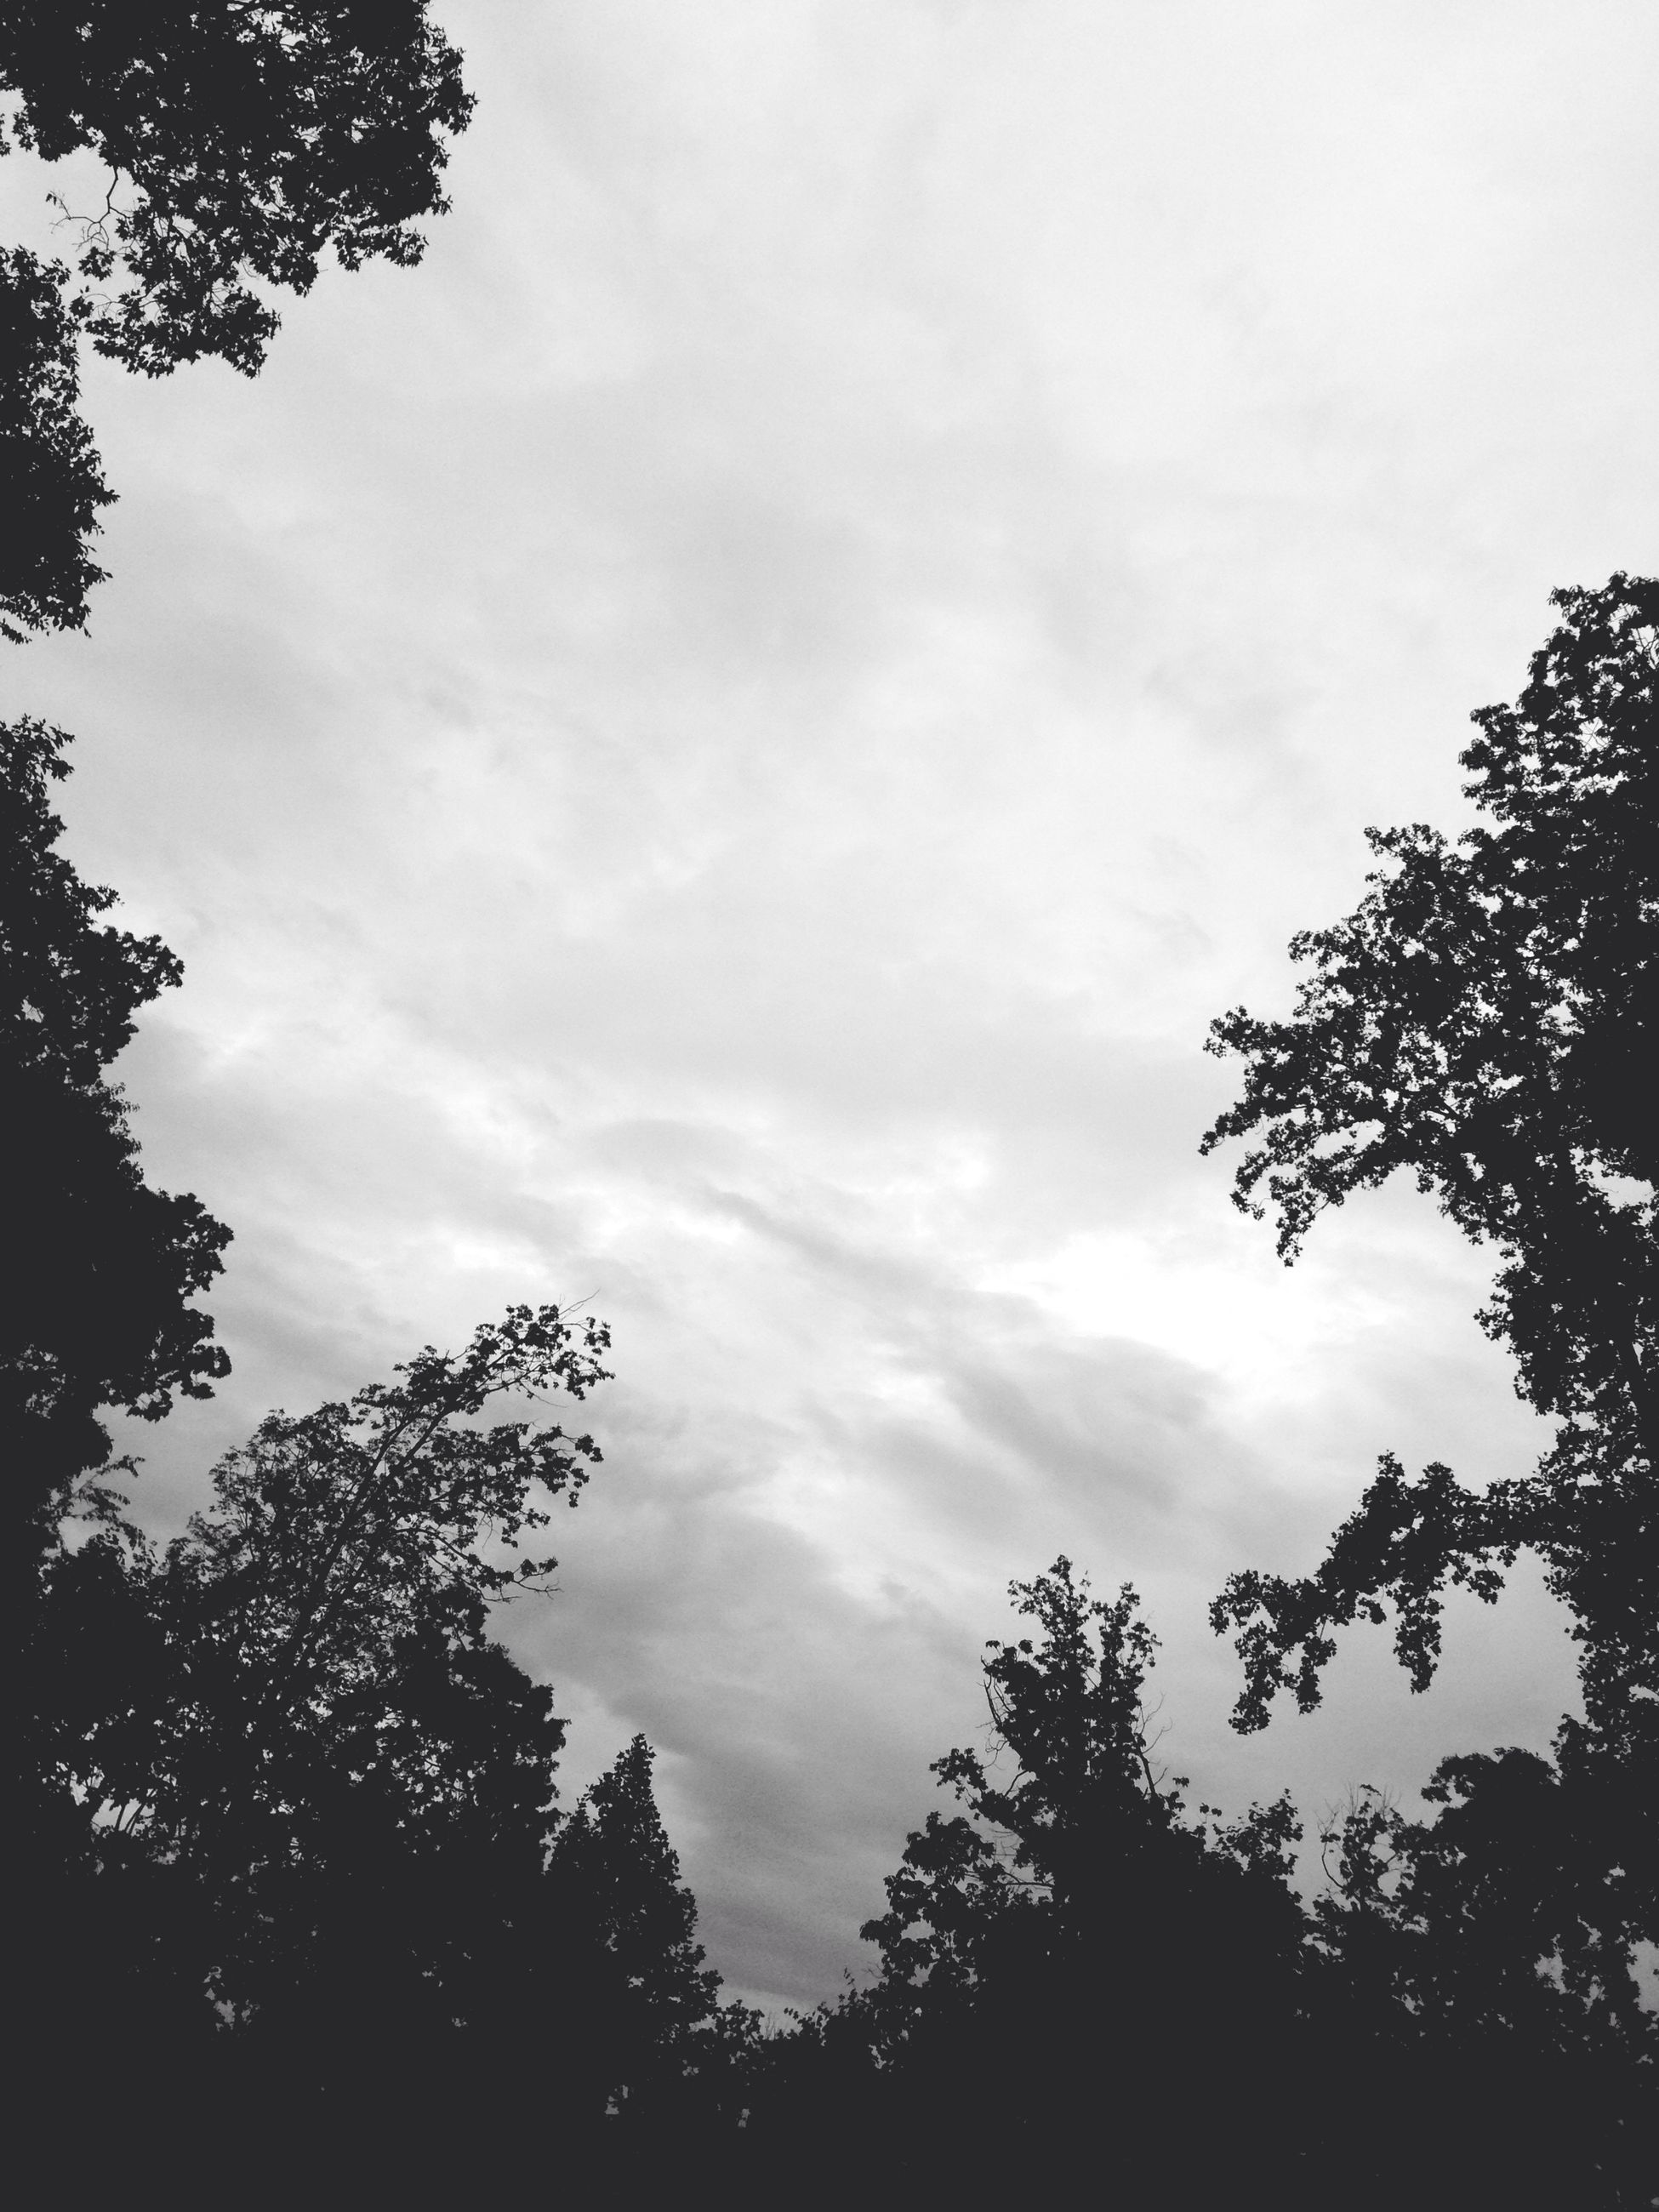 tree, low angle view, sky, silhouette, tranquility, beauty in nature, nature, growth, branch, cloud - sky, scenics, tranquil scene, treetop, cloudy, high section, outdoors, cloud, no people, forest, idyllic